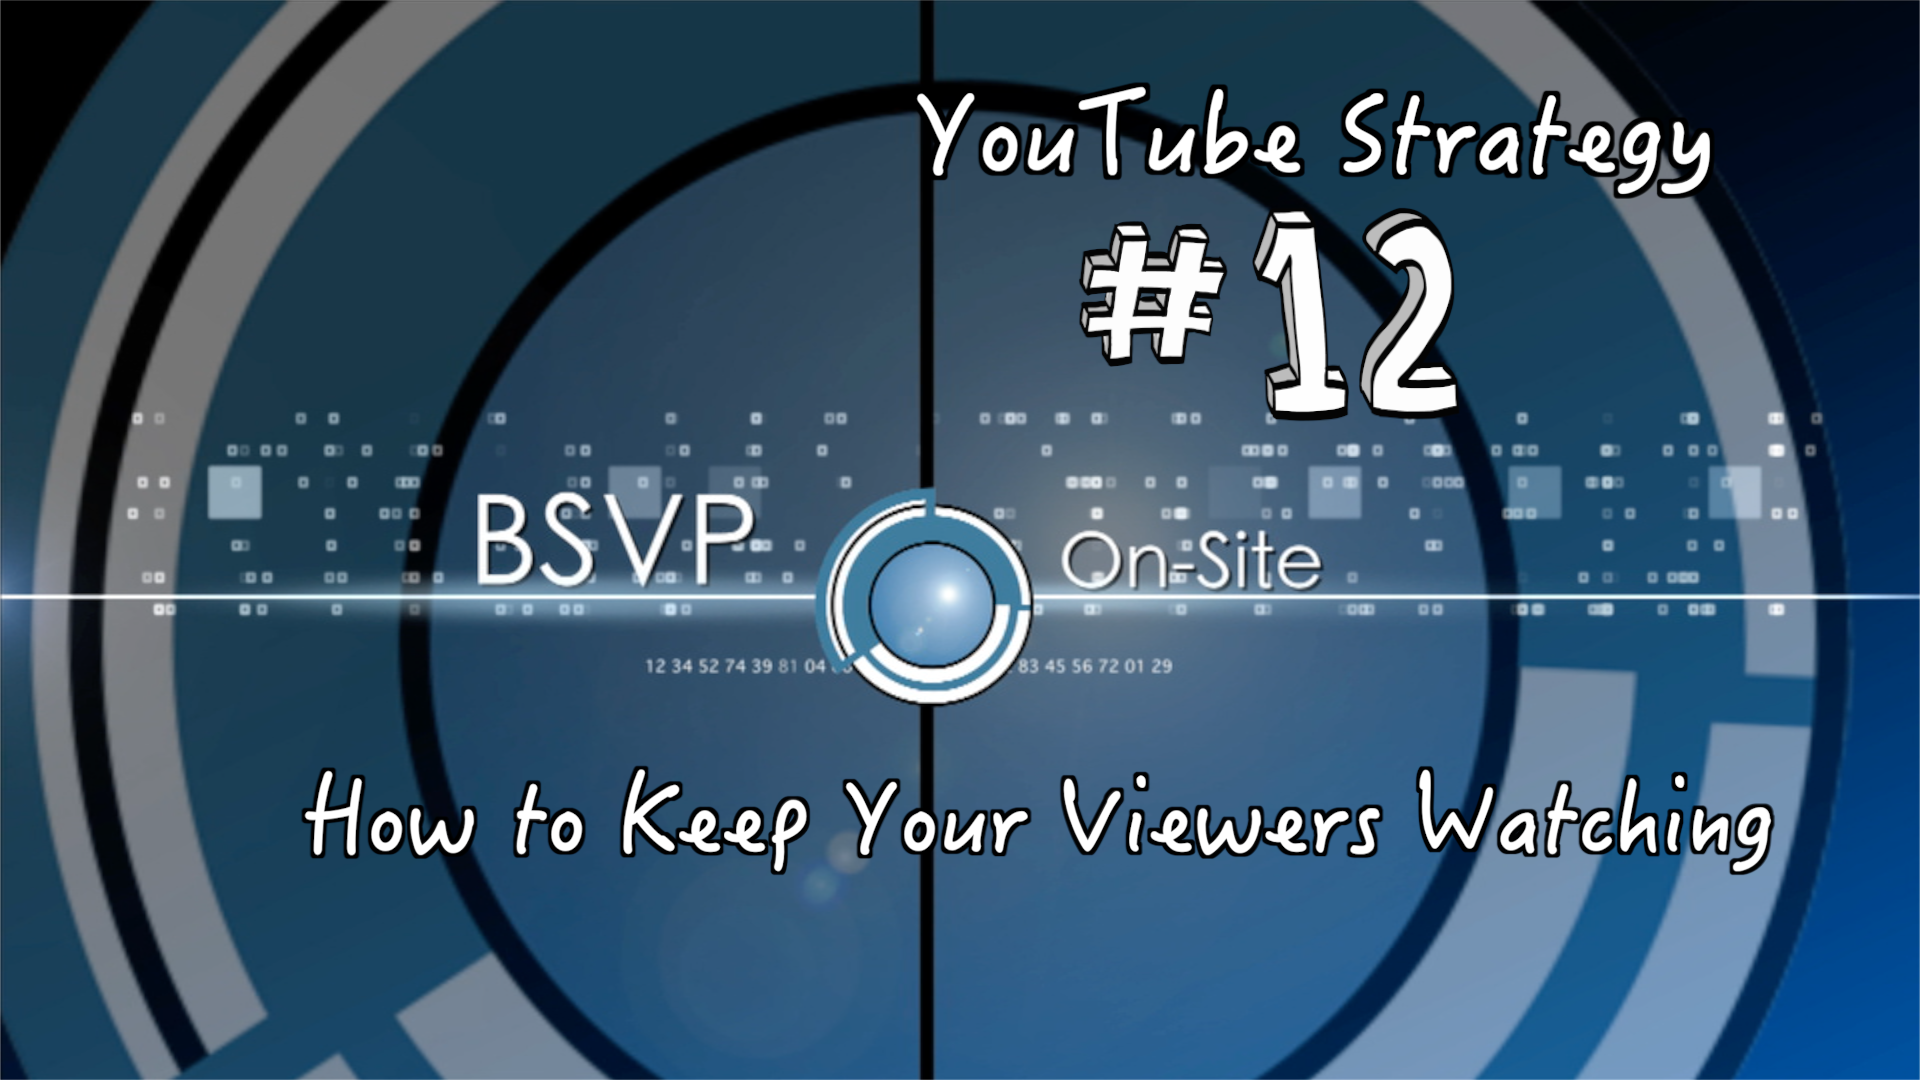 How to Keep Your YouTube Viewers Watching